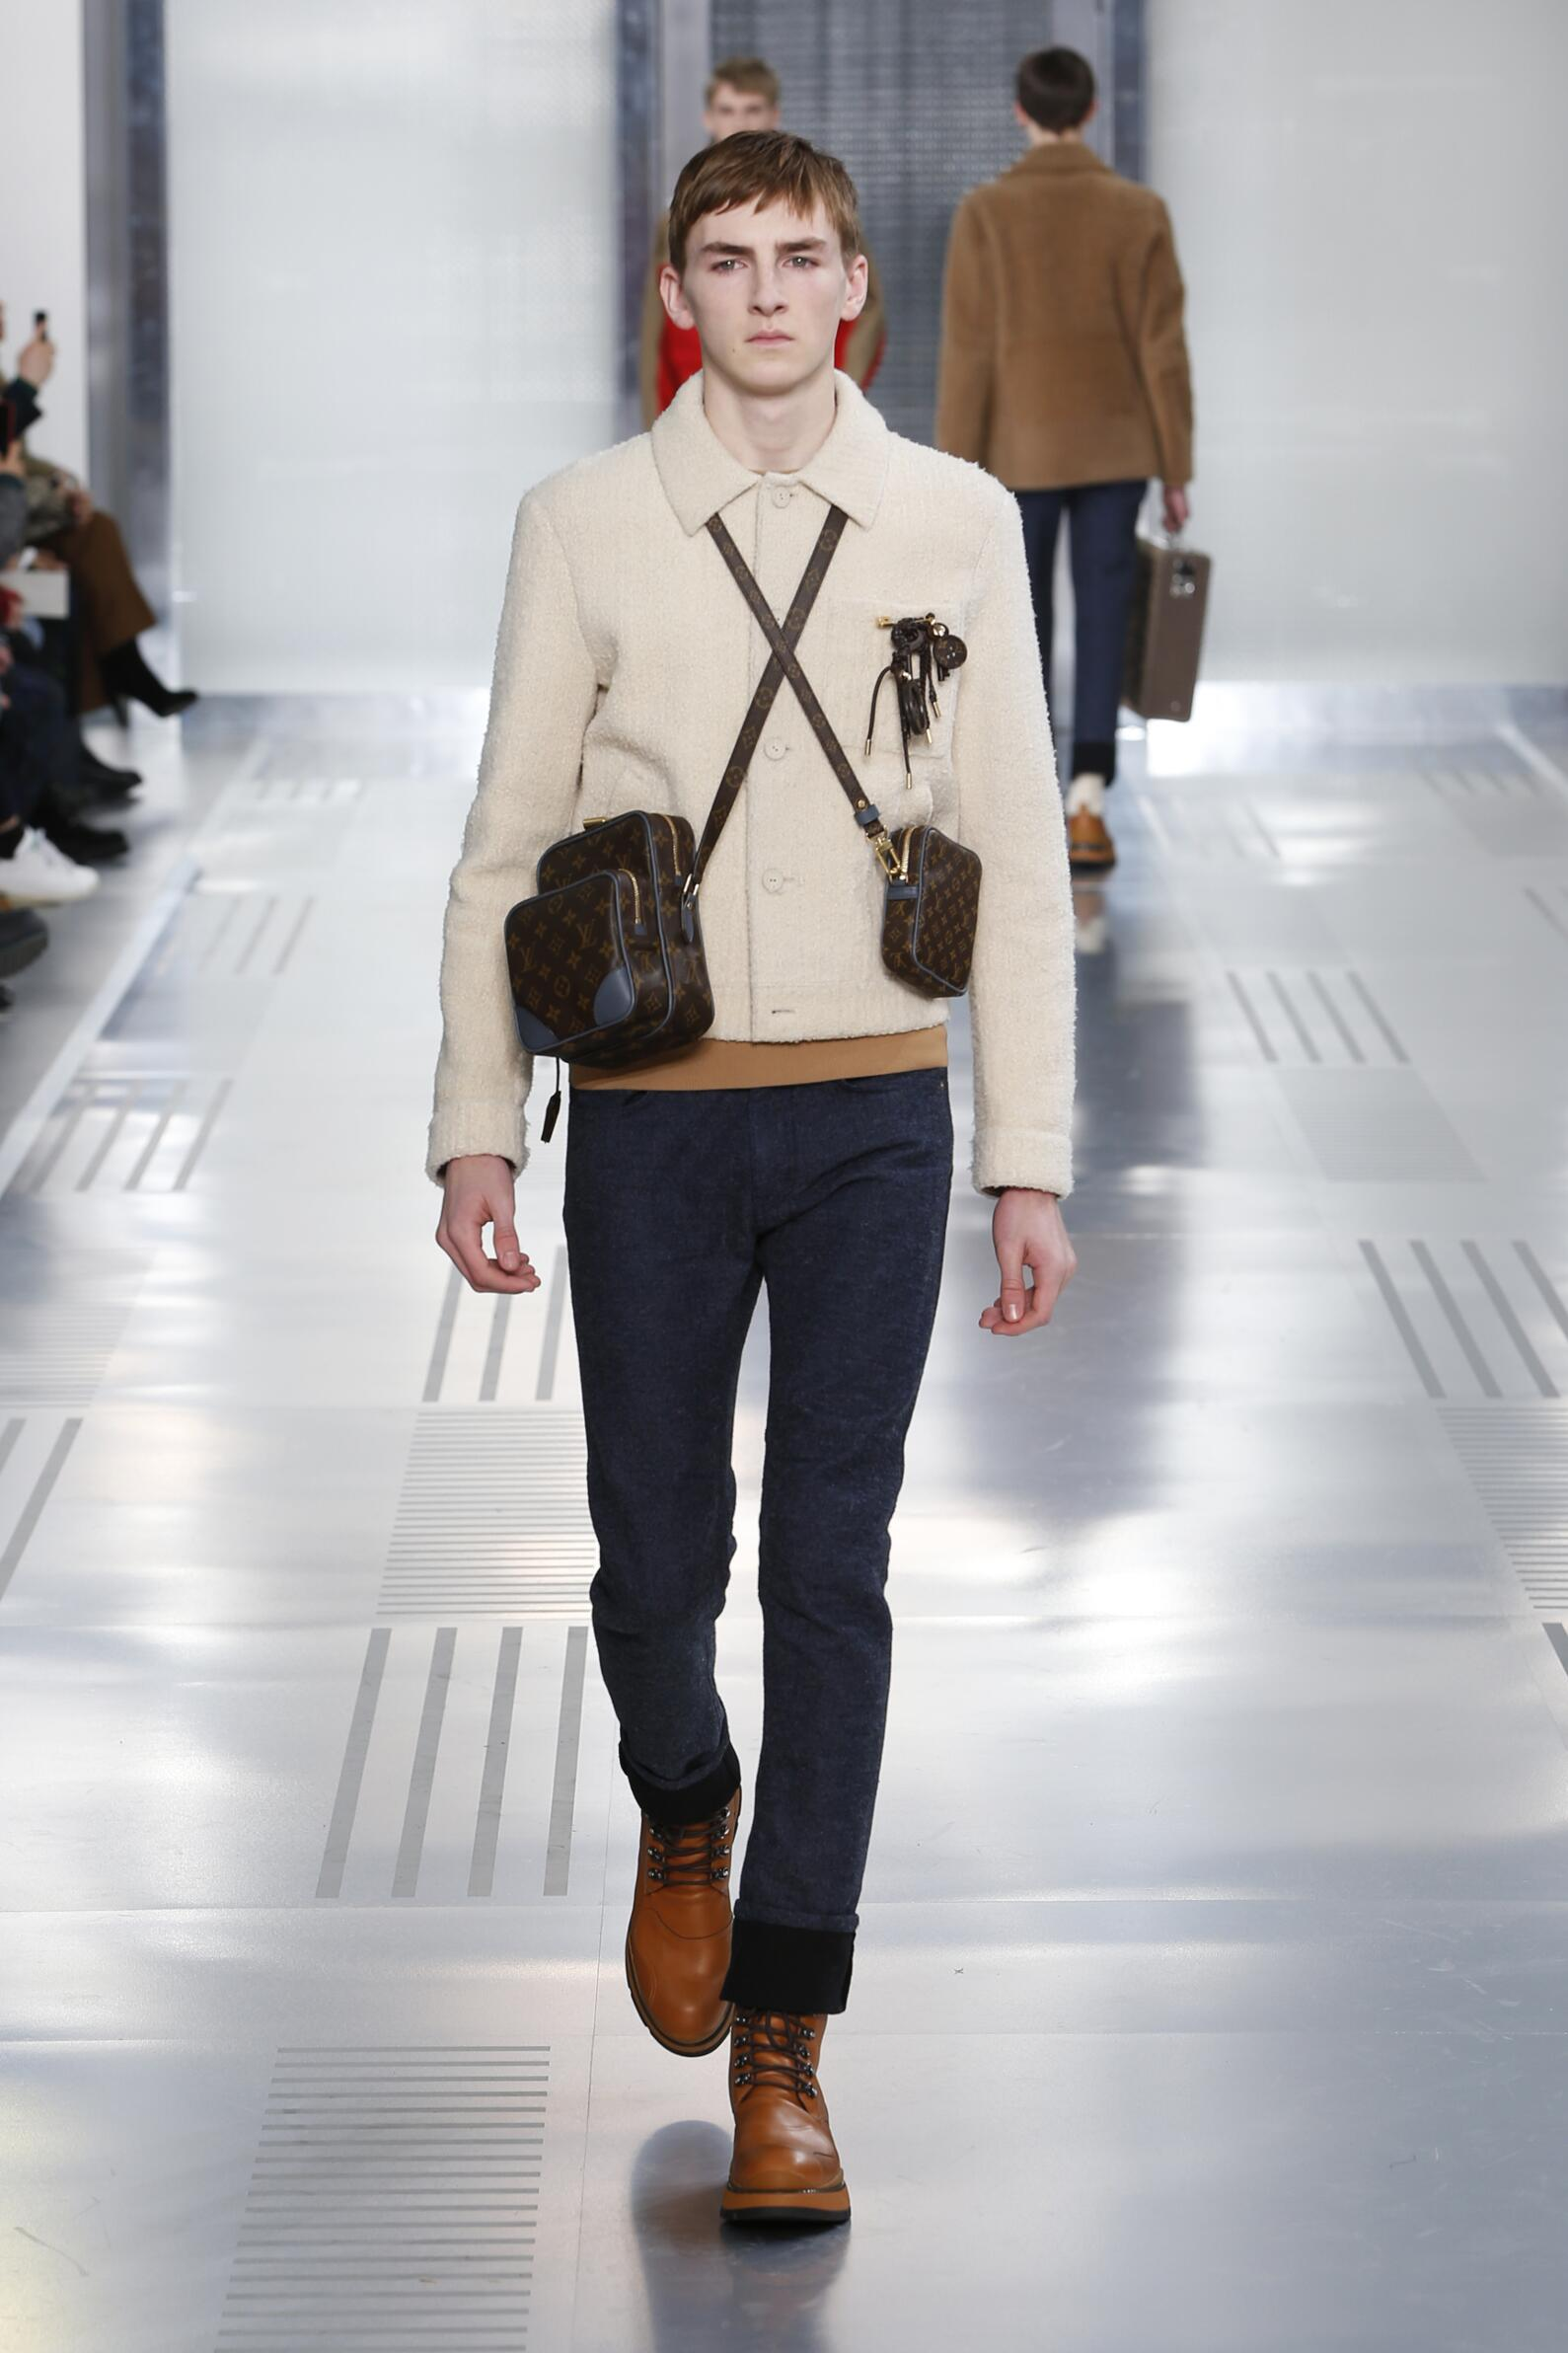 Louis Vuitton Fall Winter 2015 16 Men's Collection Paris Fashion Week Fashion Show